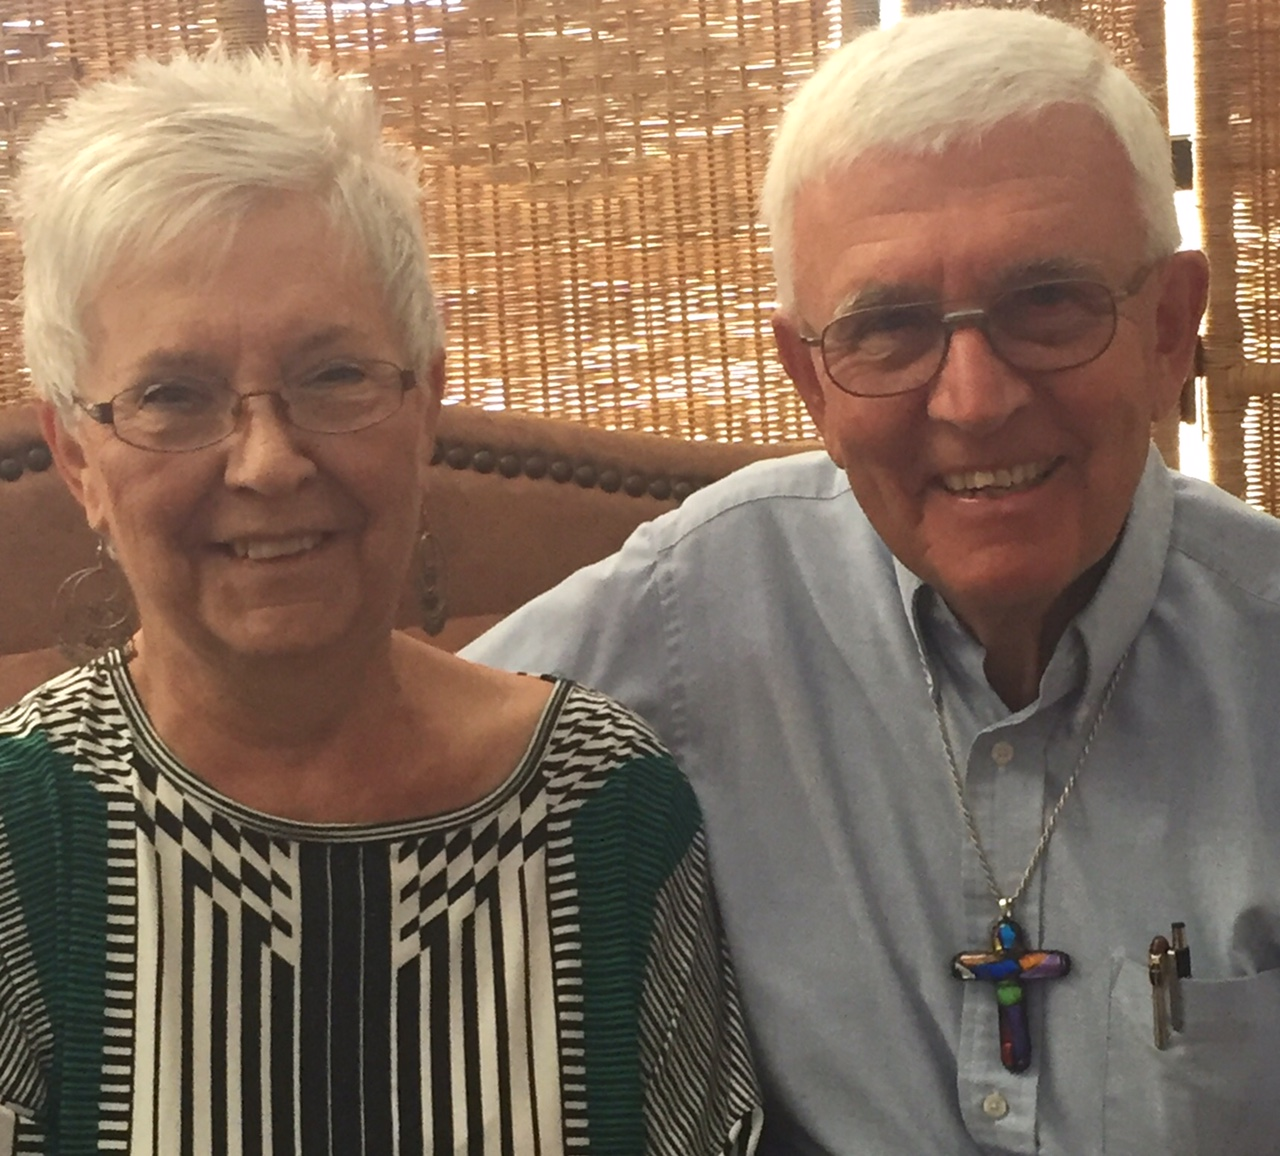 """We are humbly proud and excited to support a ministry that serves others with God's love in action.  We give thanks for the many thousands of  people served by Lutheran Social  Services of the Southwest in Jesus' name!""  -Judith Stieve, Retired RN and Small Business Owner and Rev. John Stieve, Board Member and Retired Pastor"